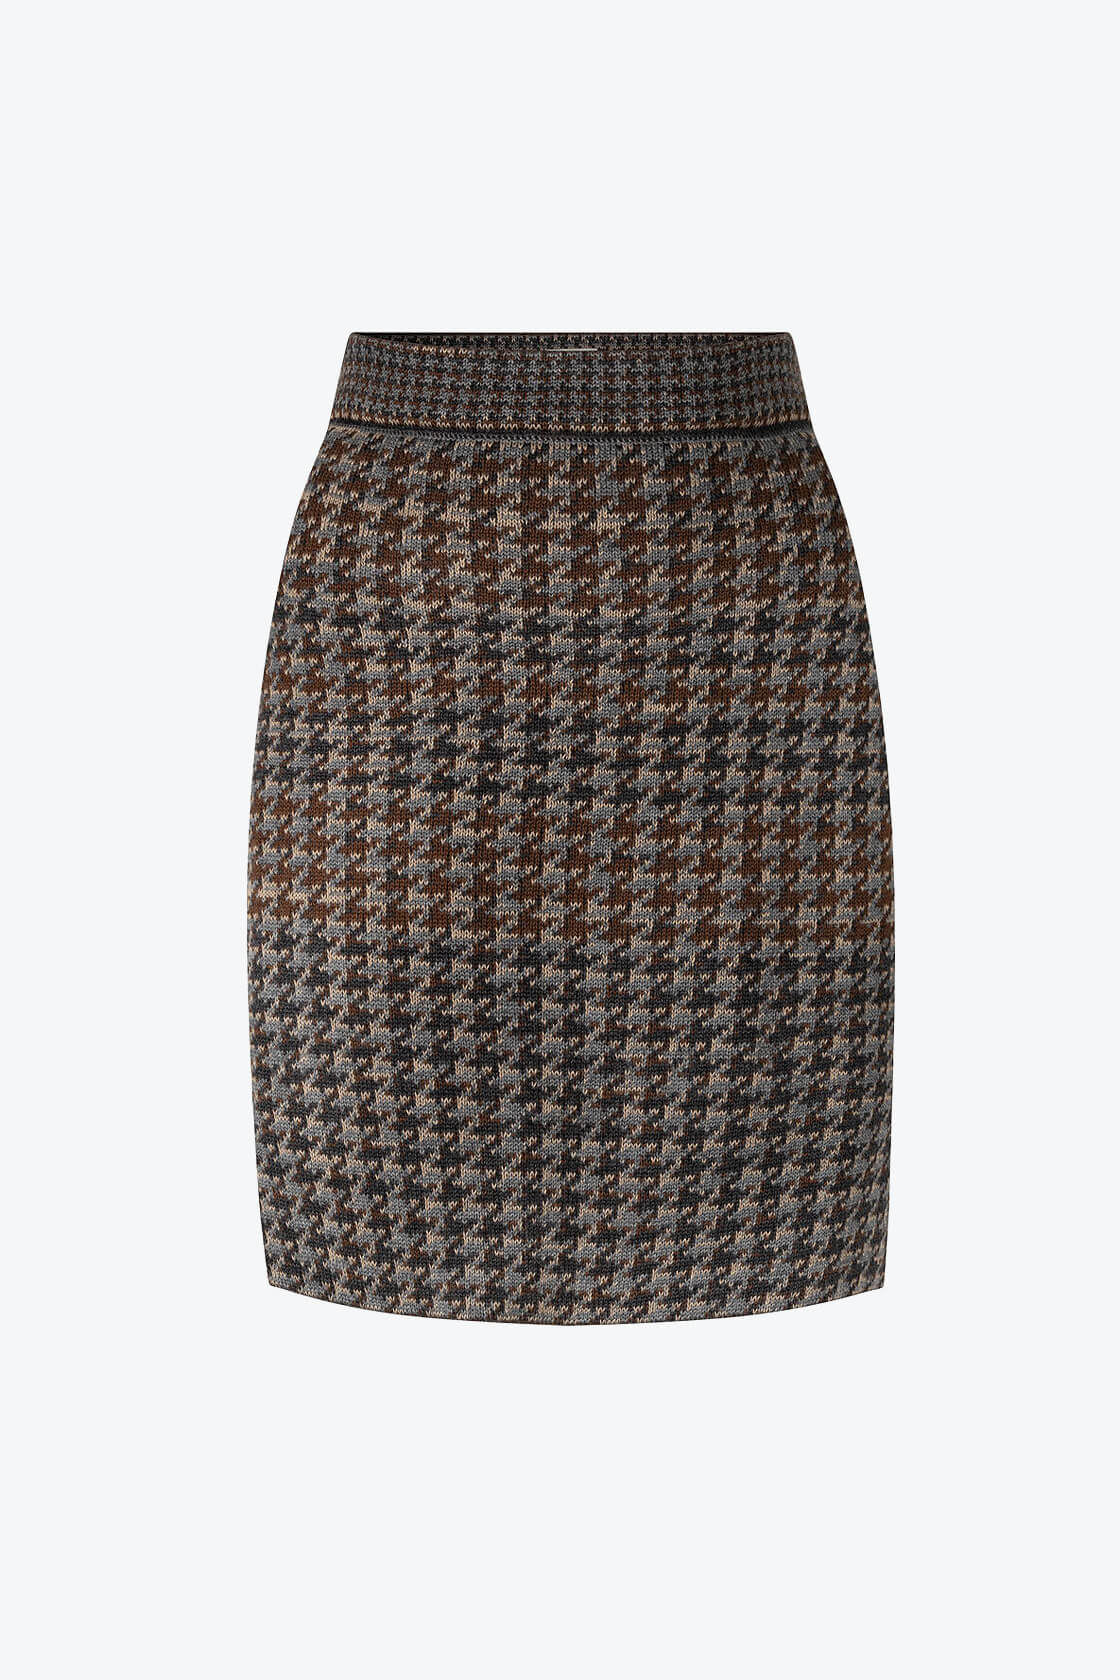 Knitted Knee Length Pencil Skirt In Pieds De Poule Pattern Tweed Raven